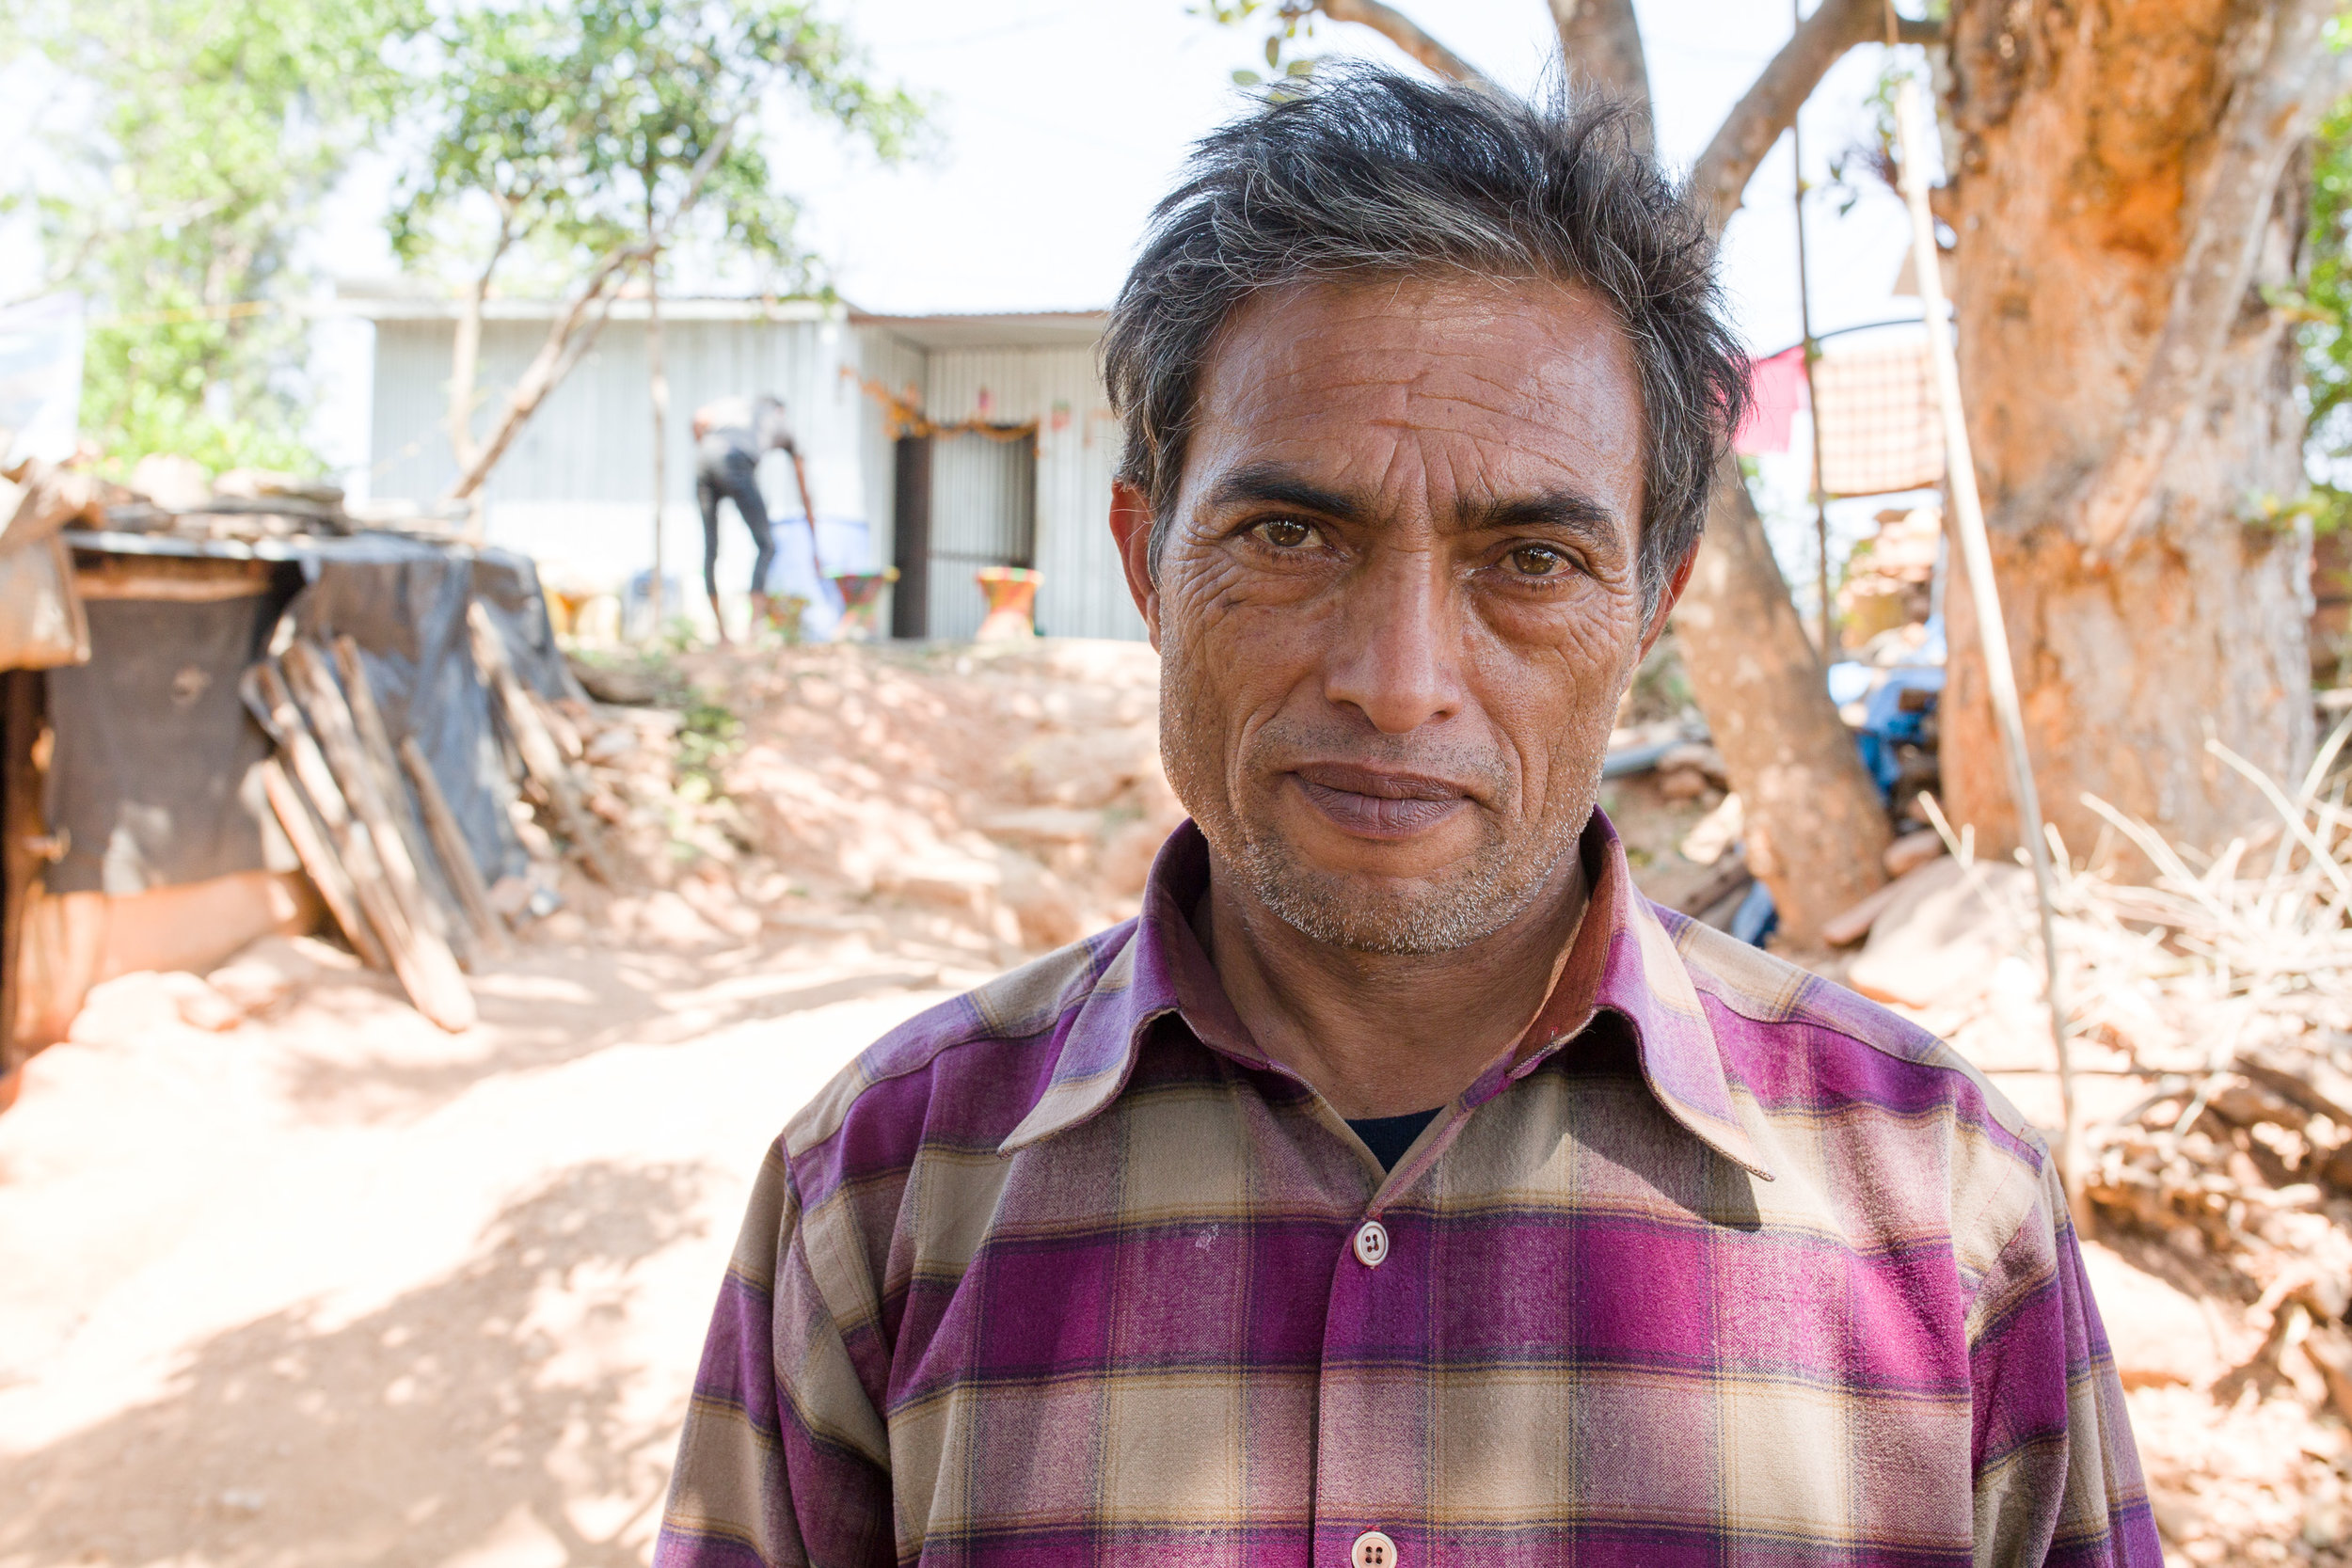 Narayan Giri's mother died from injuries she sustained in the earthquake. Here Narayan stands in front of his new temporary home.